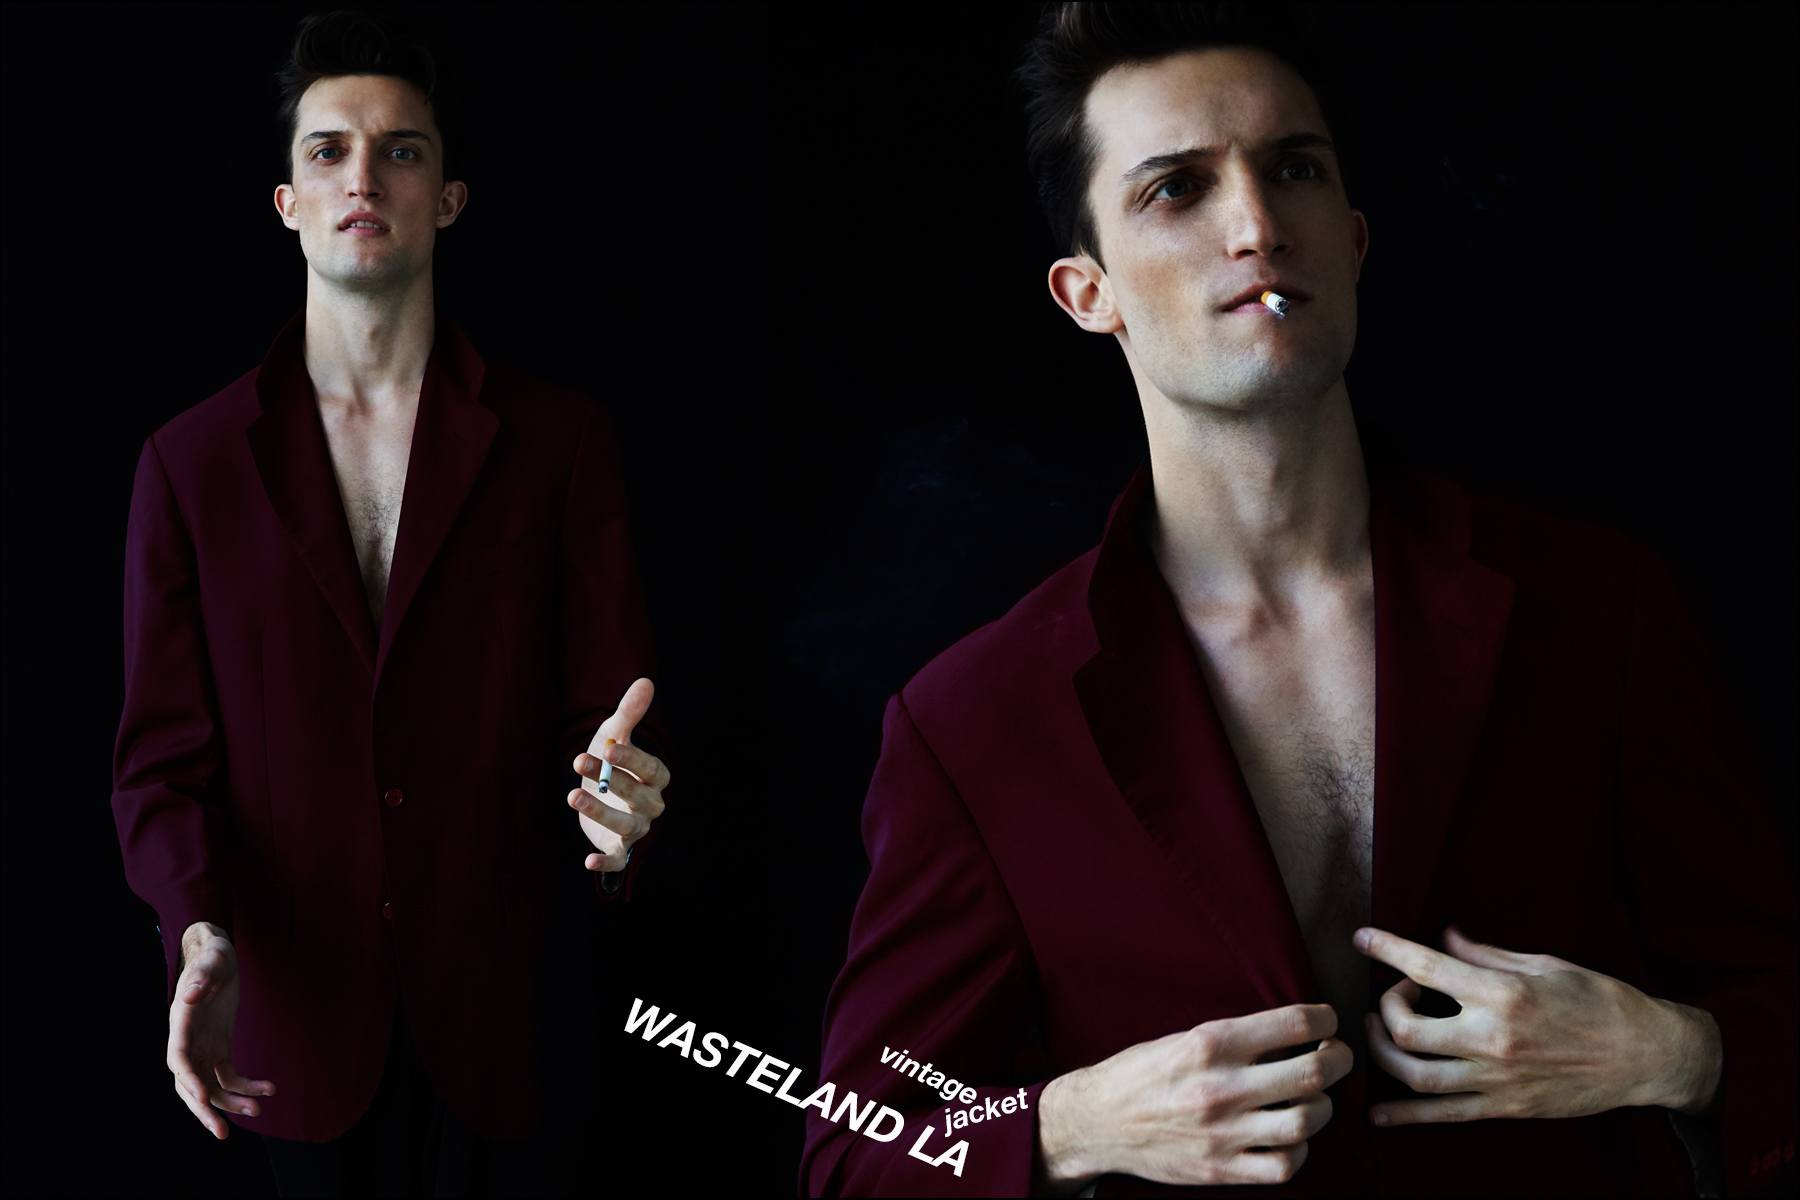 Male model Max Von Isser, from Fusion Model Management, photographed in vintage menswear for Ponyboy magazine NY. Photographs by Alexander Thompson.